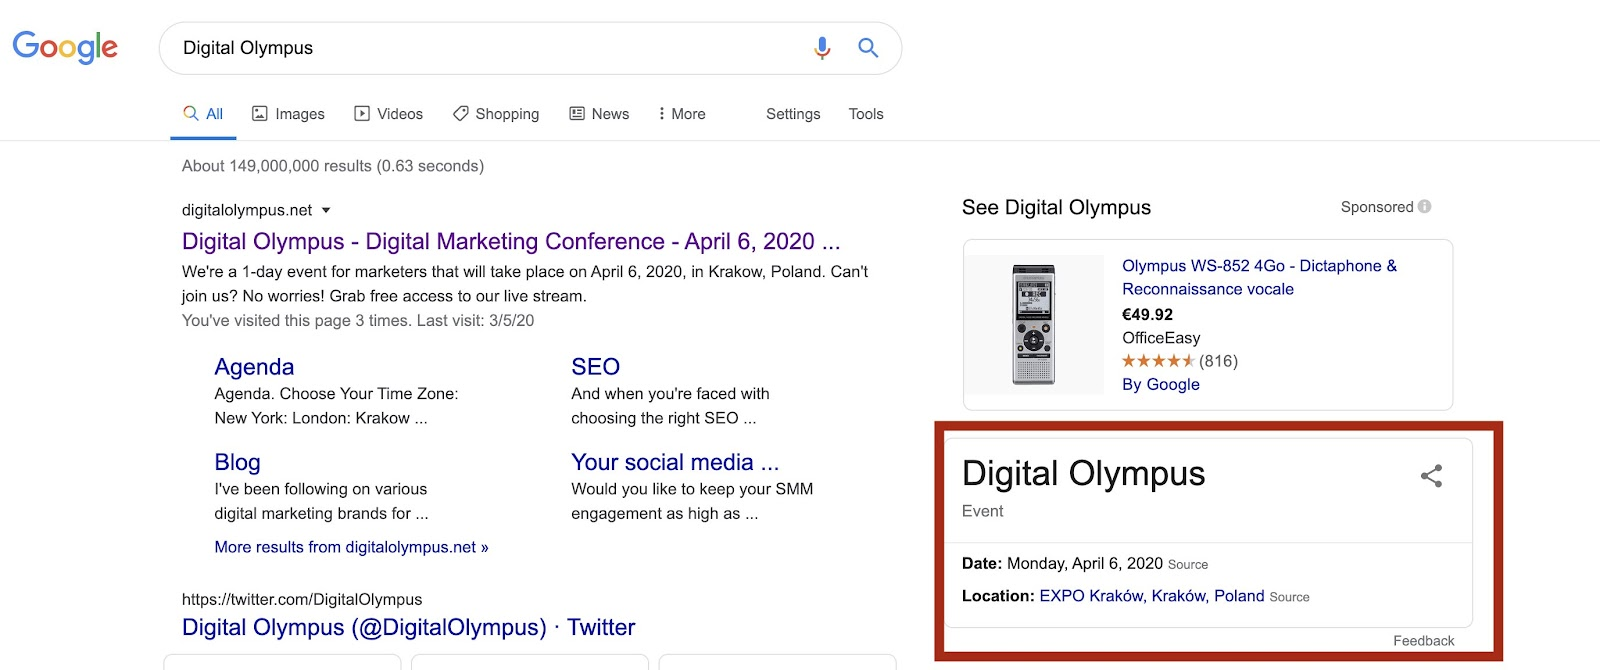 Digital Olympus marketing conference popping up in SERP